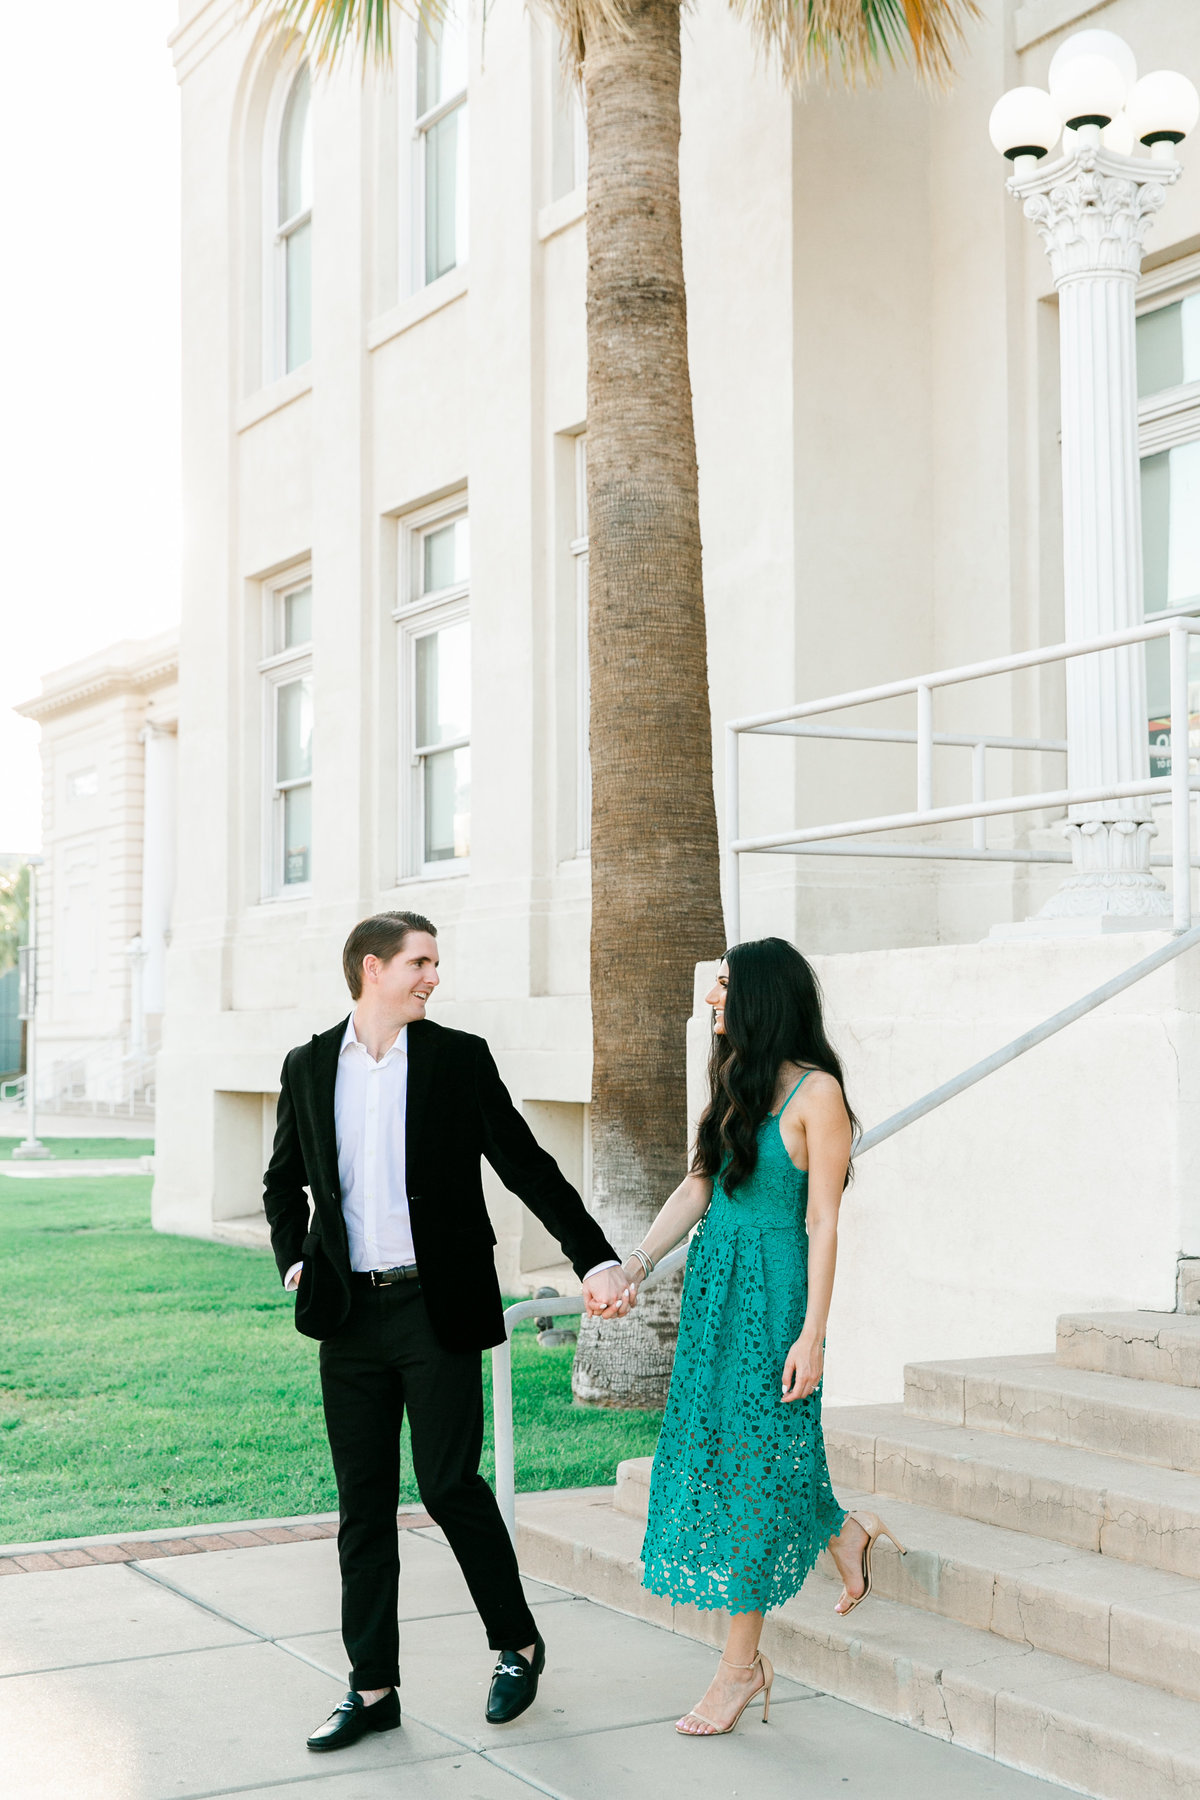 Karlie Colleen Photography - Arizona Engagement City Shoot - Kim & Tim-136